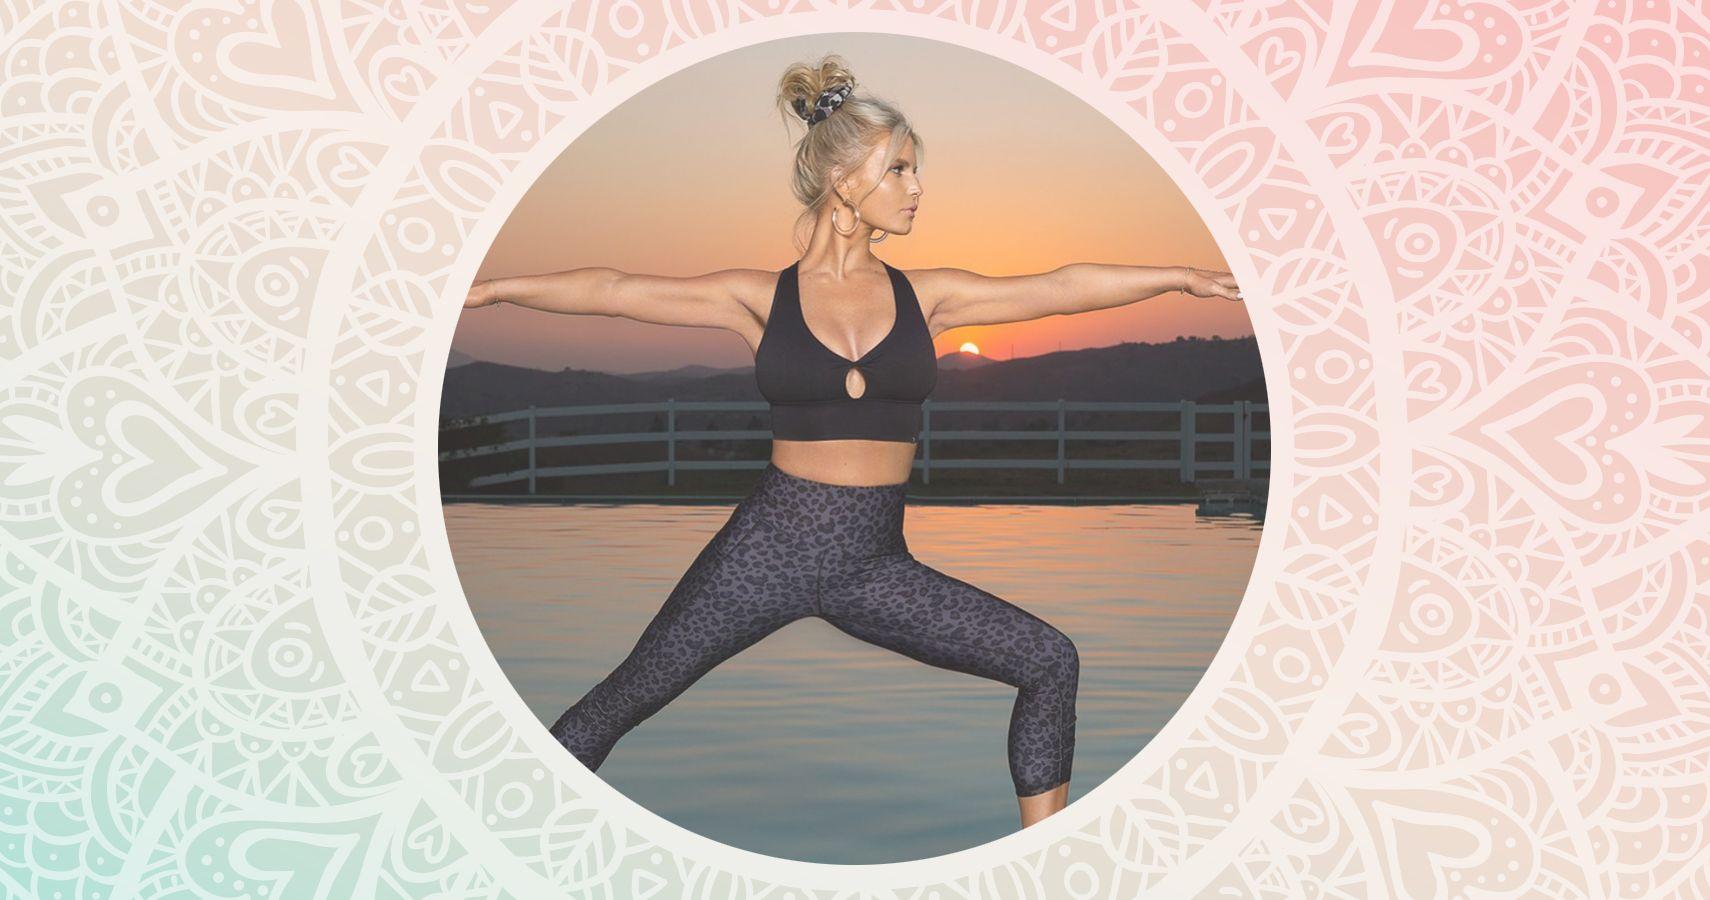 Jessica Simpson's Yoga Picture Reminds Us To Self-Care | Moms.com